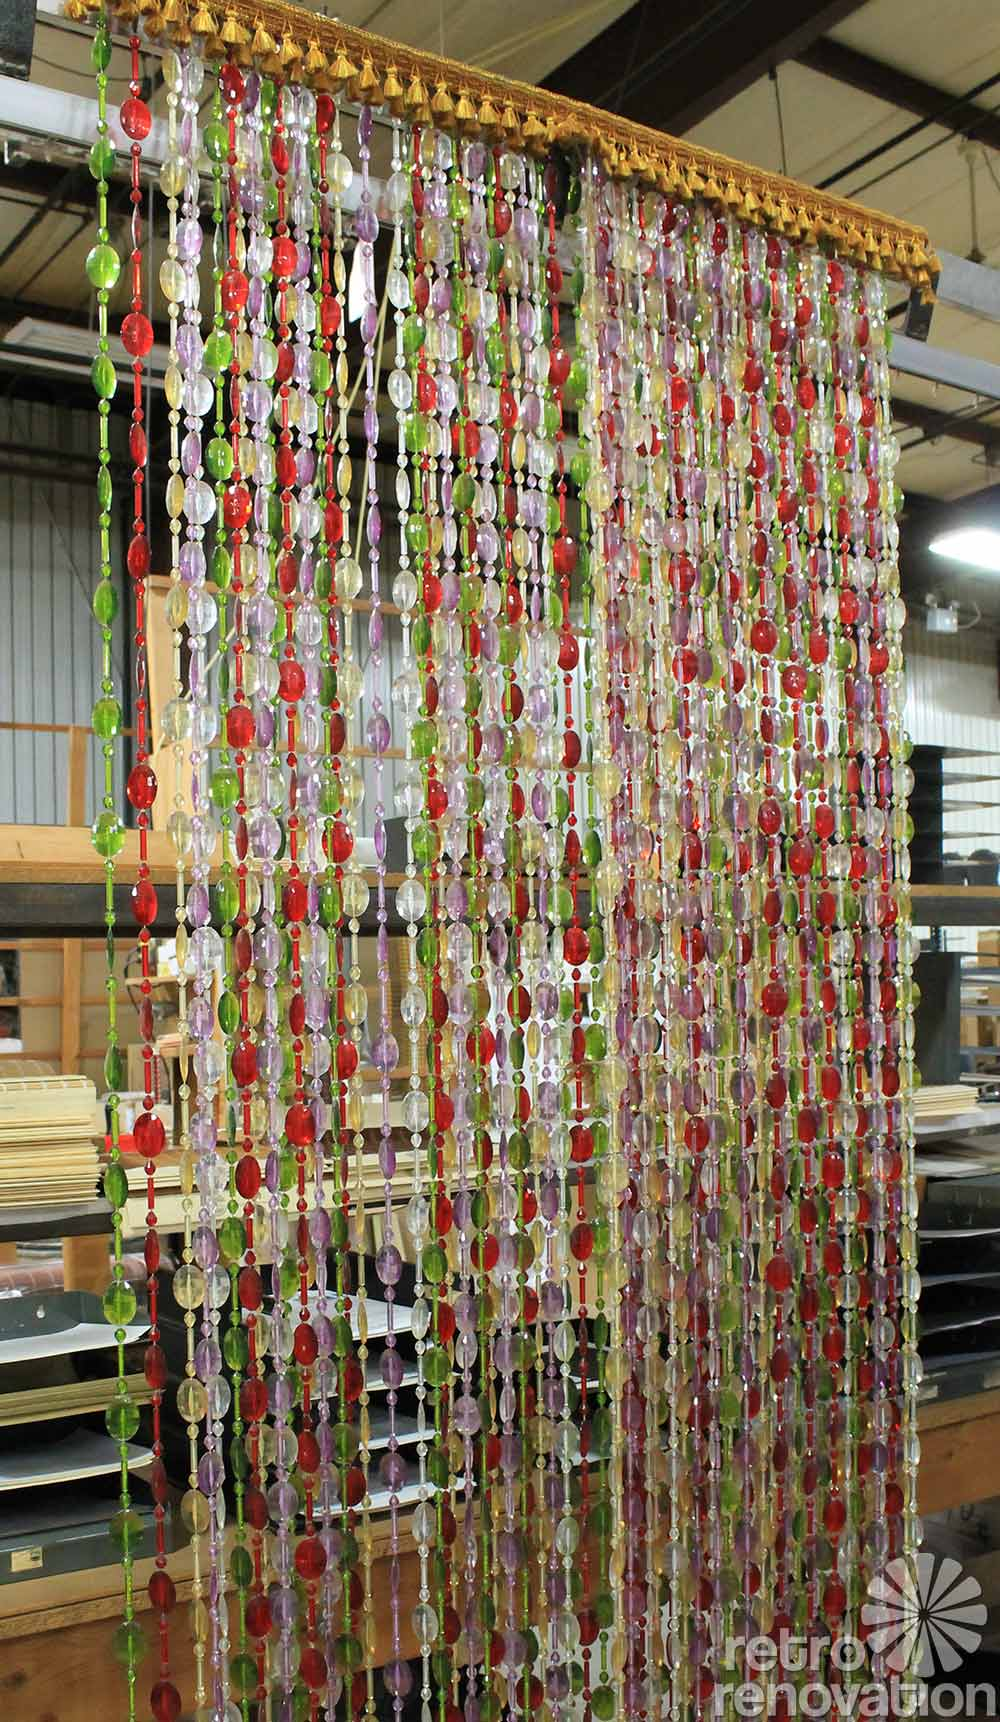 Beauti vue beaded curtains made in the usa new old stock for Curtain making service